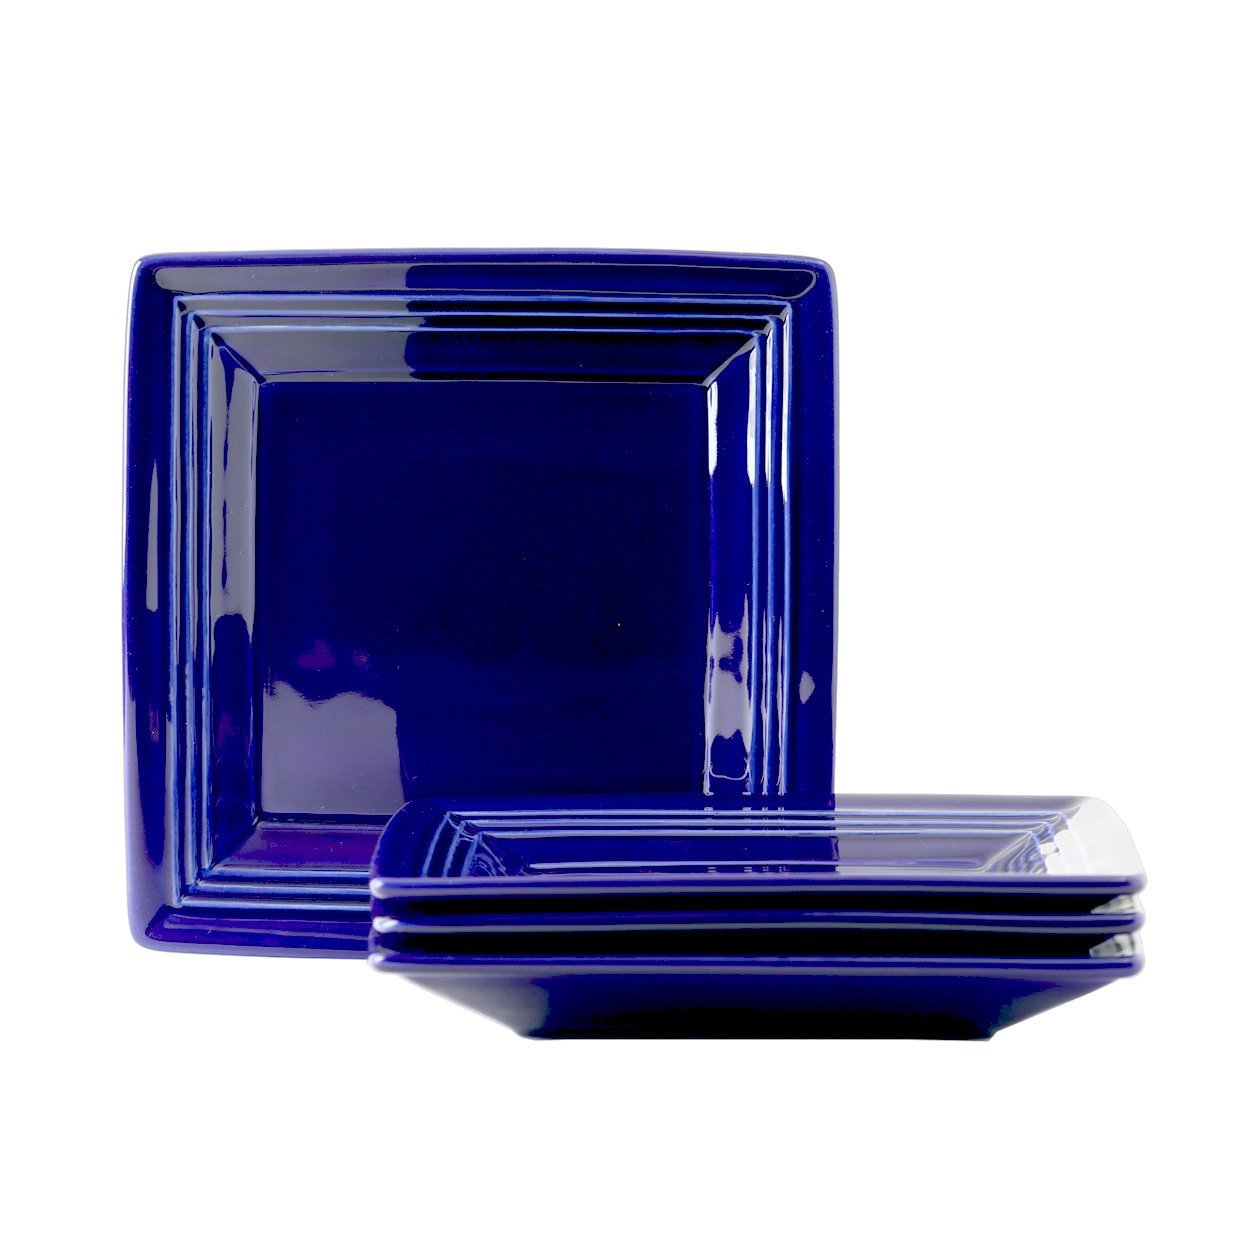 Tuxton Home Concentrix Square Plate (Set of 4), 8 1/2'', Cobalt Blue; Heavy Duty; Chip Resistant; Lead and Cadmium Free; Freezer to Oven Safe up to 500F